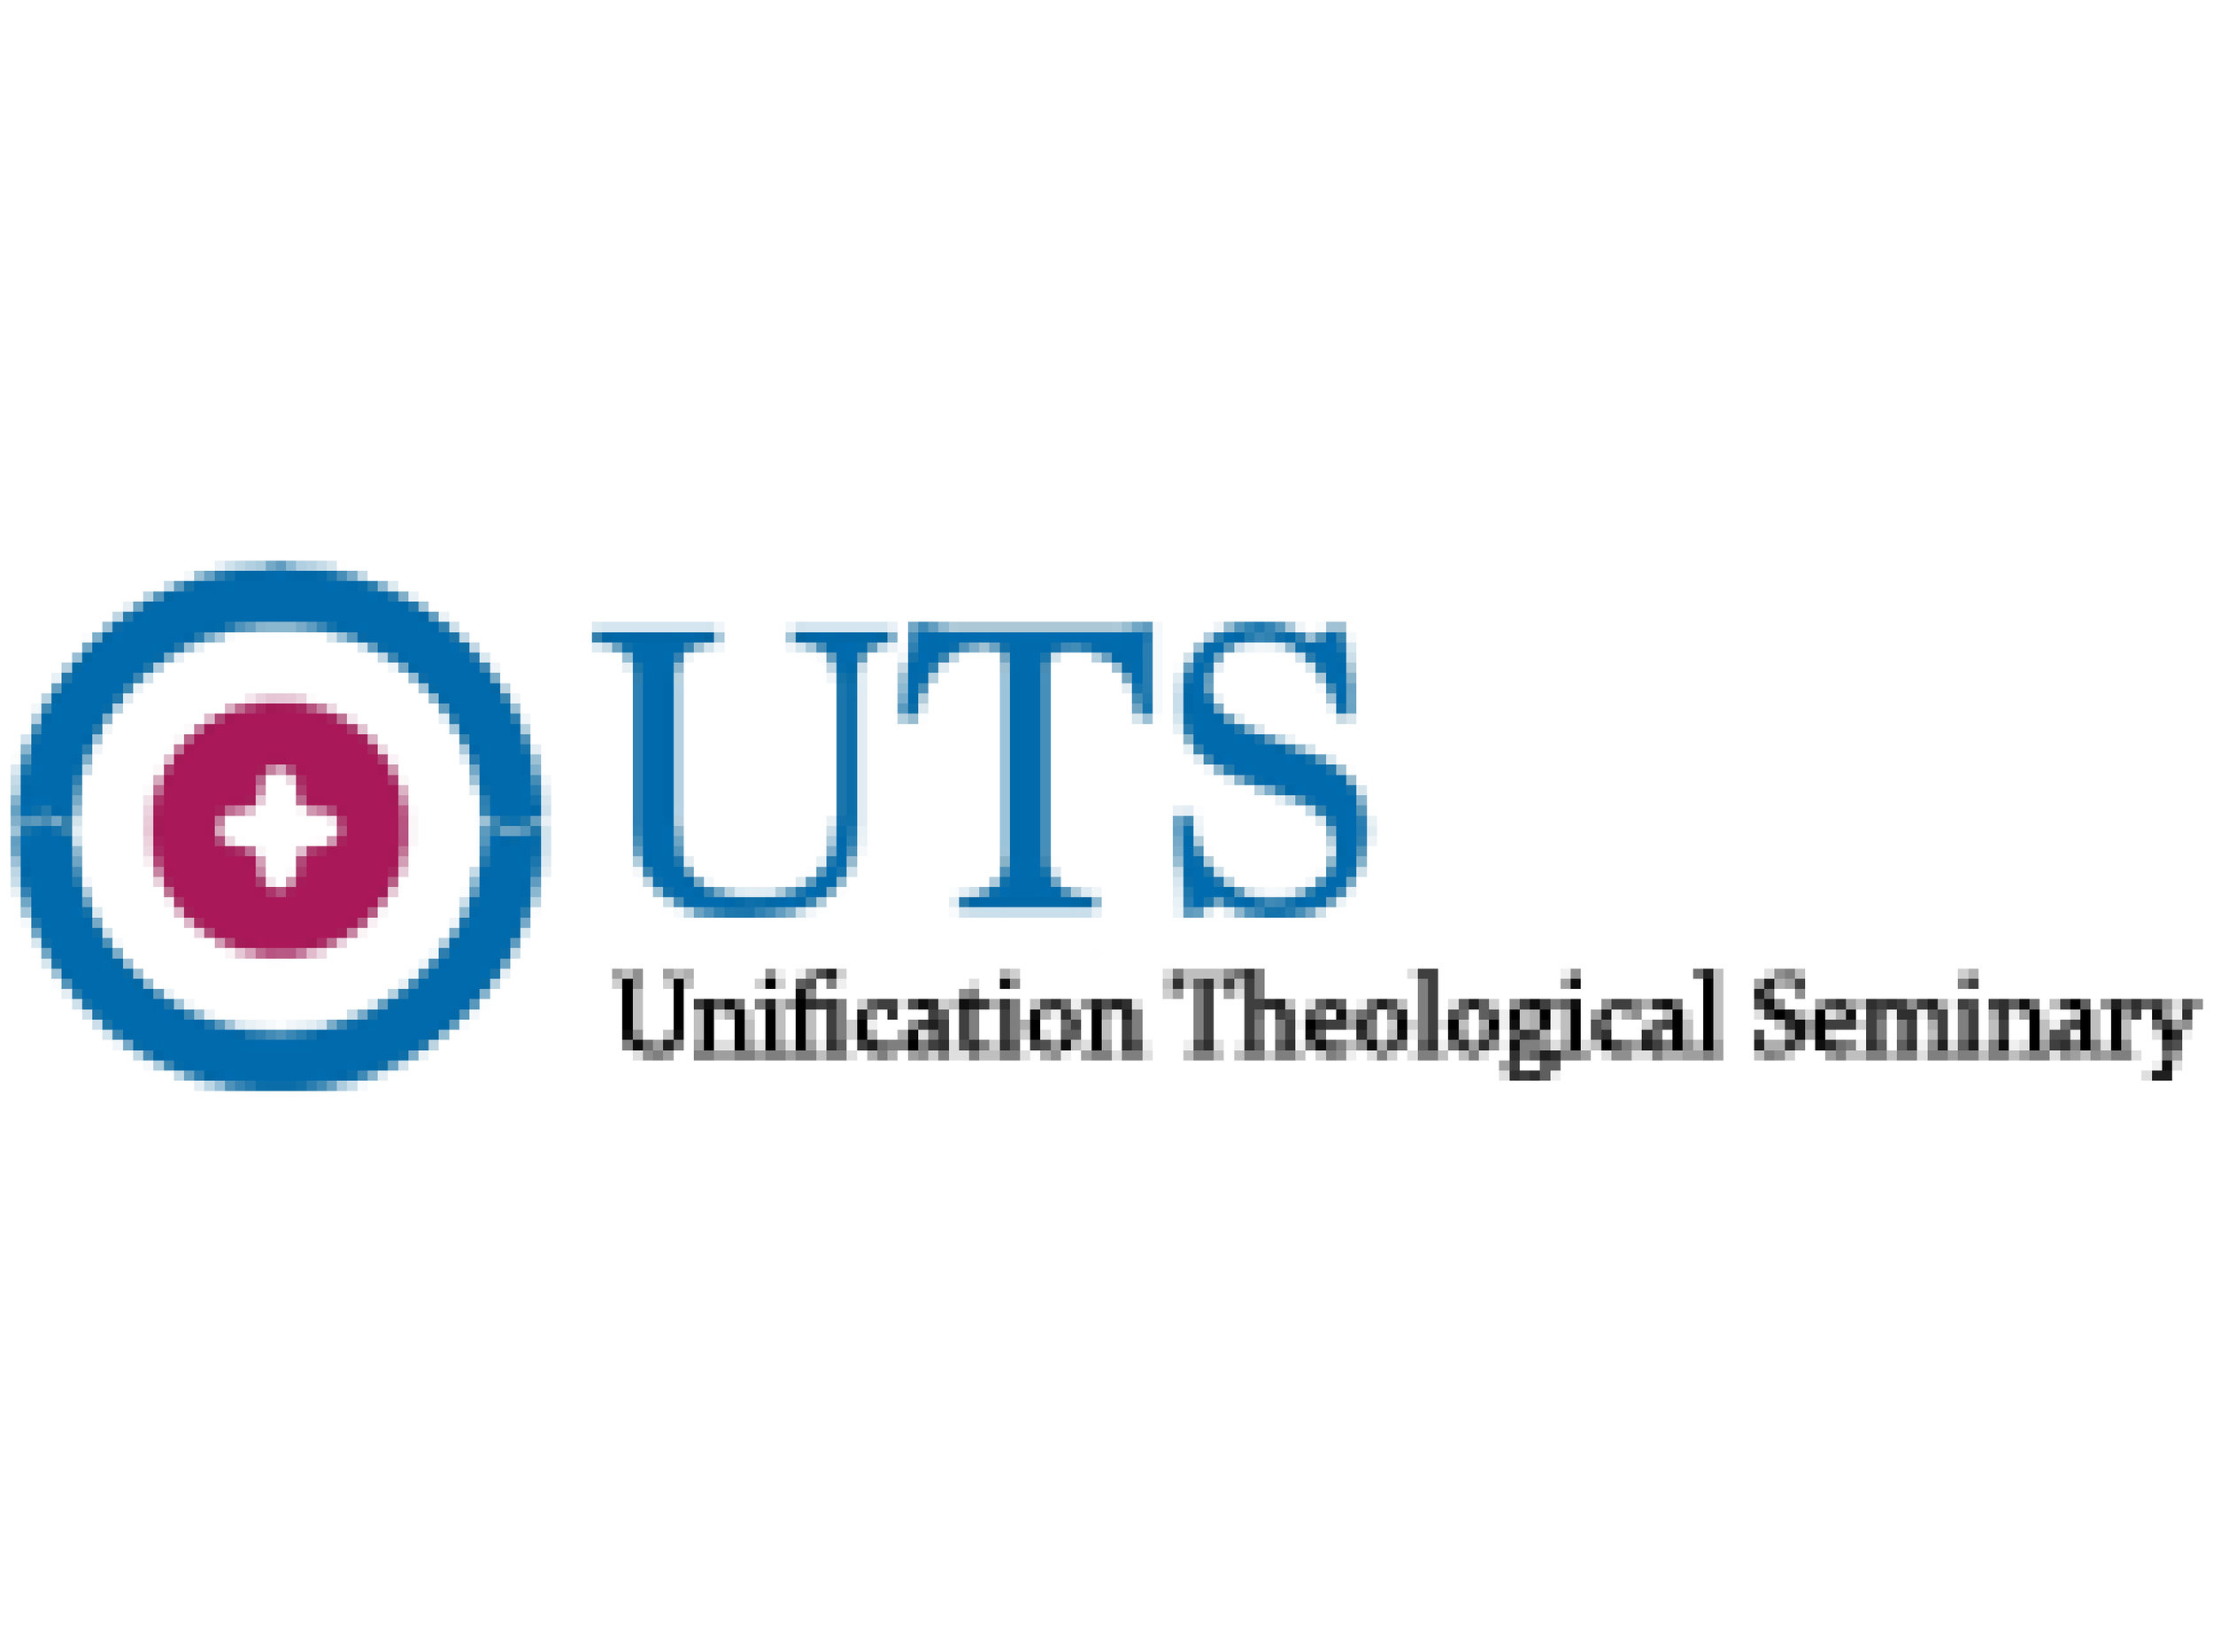 Unification Theological Seminary